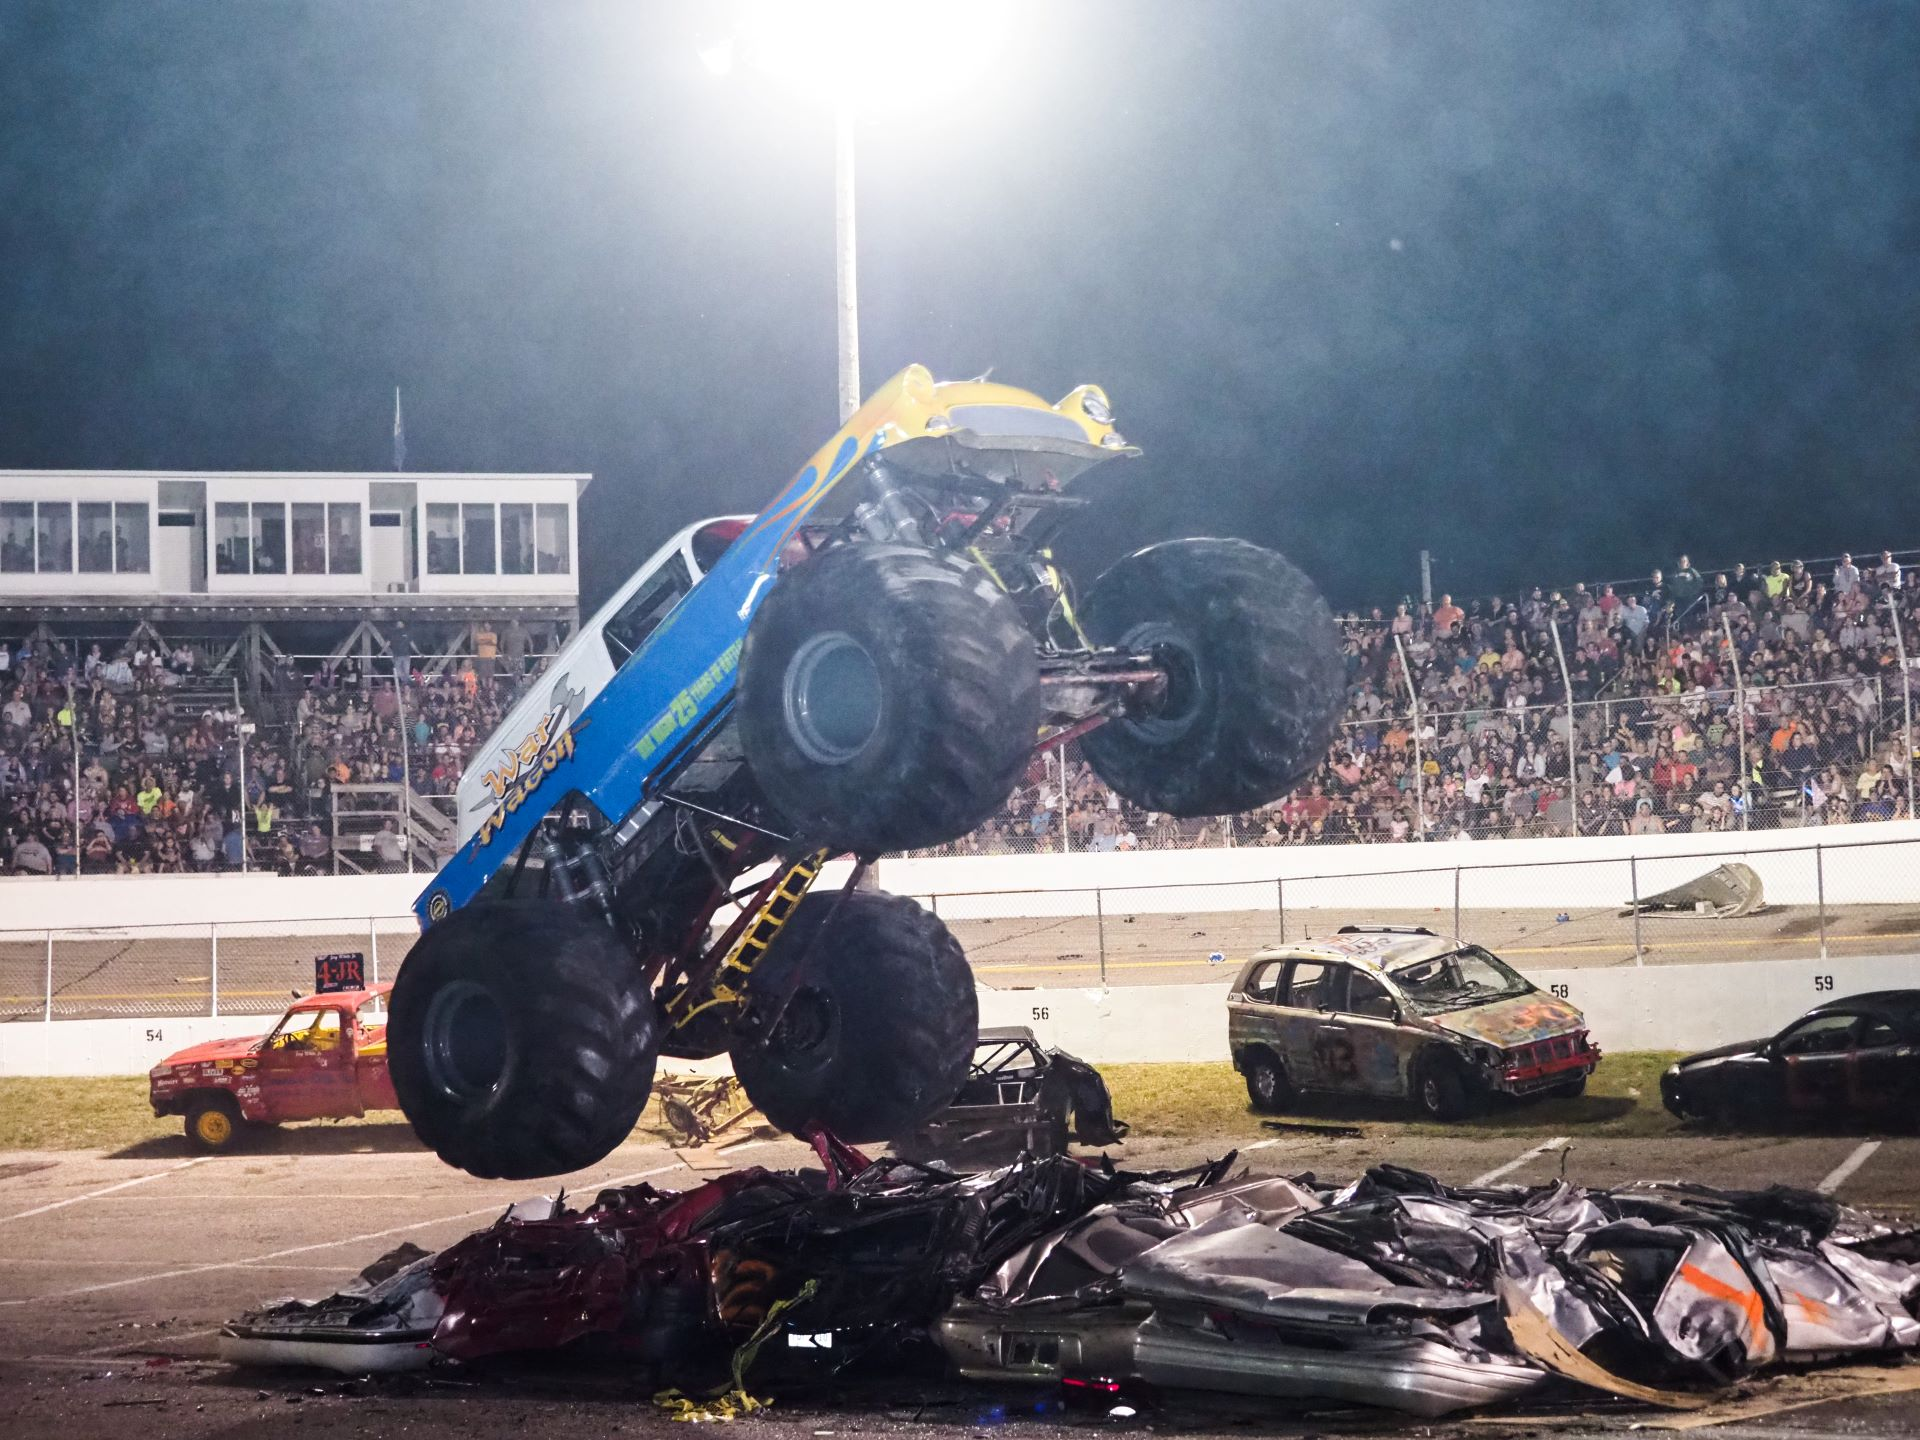 Mega Night of Destruction featuring Monster Trucks, Jet Car Melt Down, new Zoo Double Decker Cars, Bus & Trailer Races, New Stunts by Scarecrow & More PLUS Fireworks